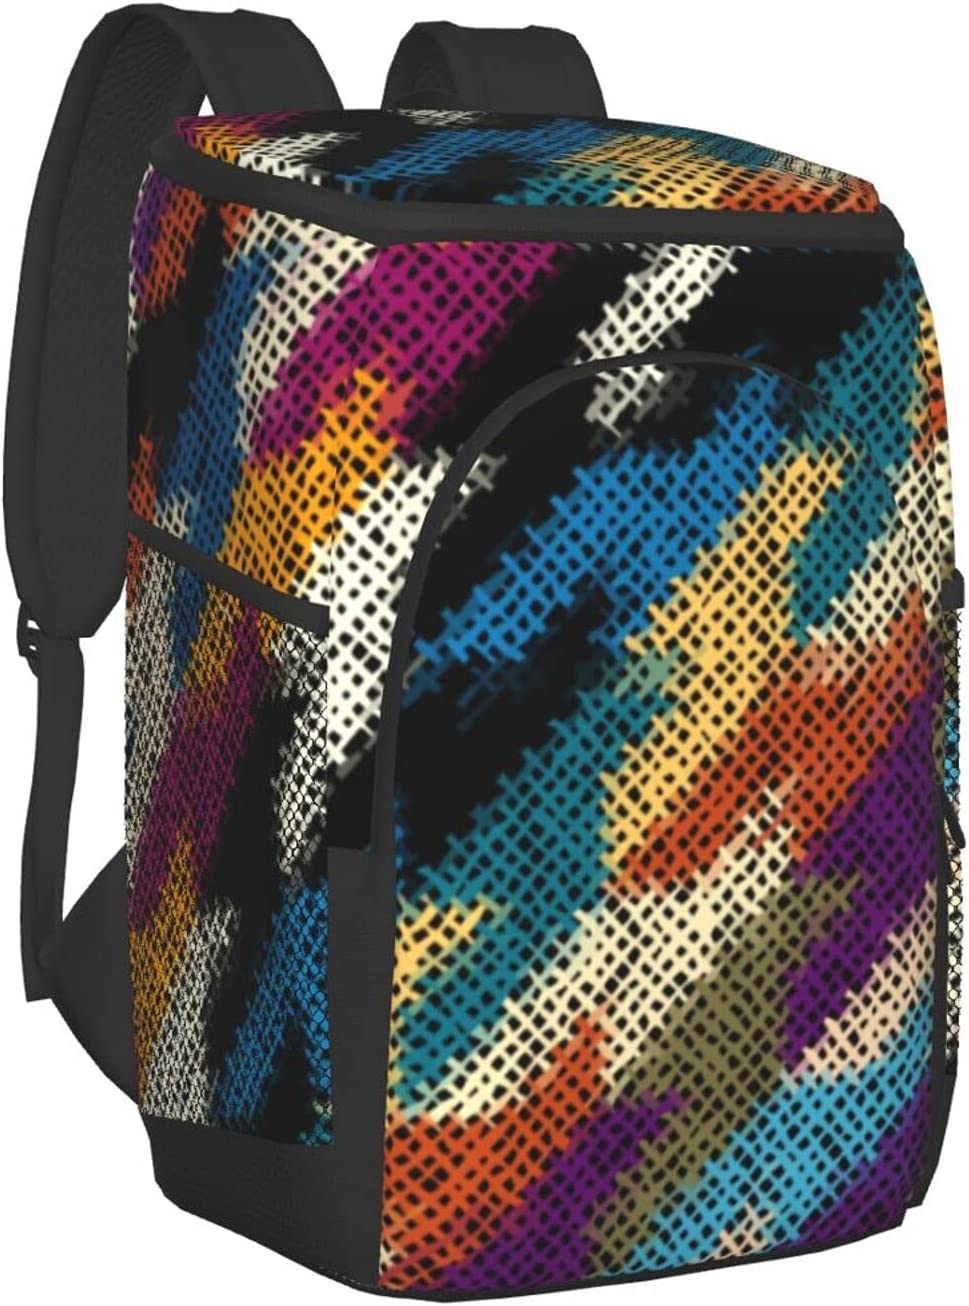 Spring new work one after another Black and White Canvas Texture 5% OFF Insulated Bag Backpack Lea Cooler